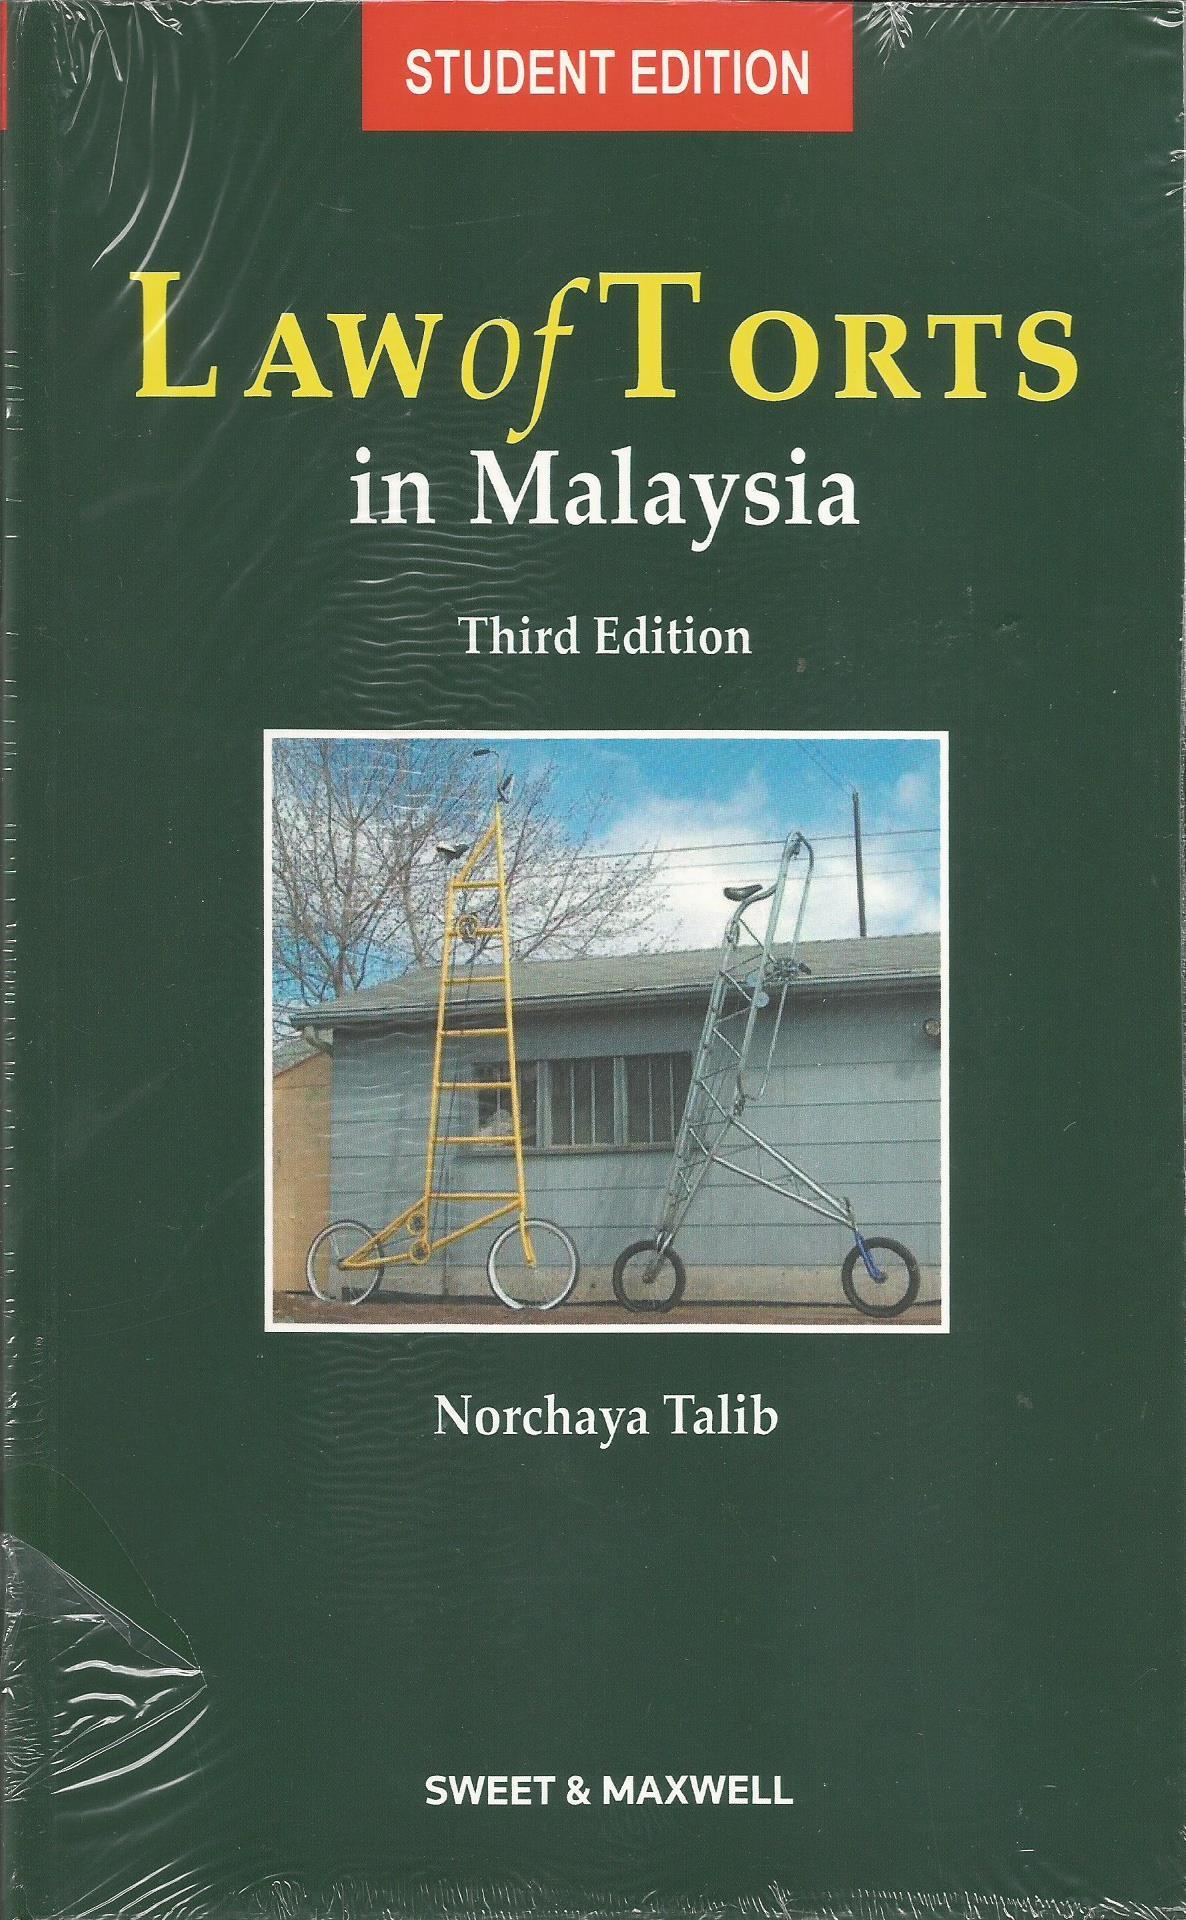 law of torts rm100 0.880001.jpg